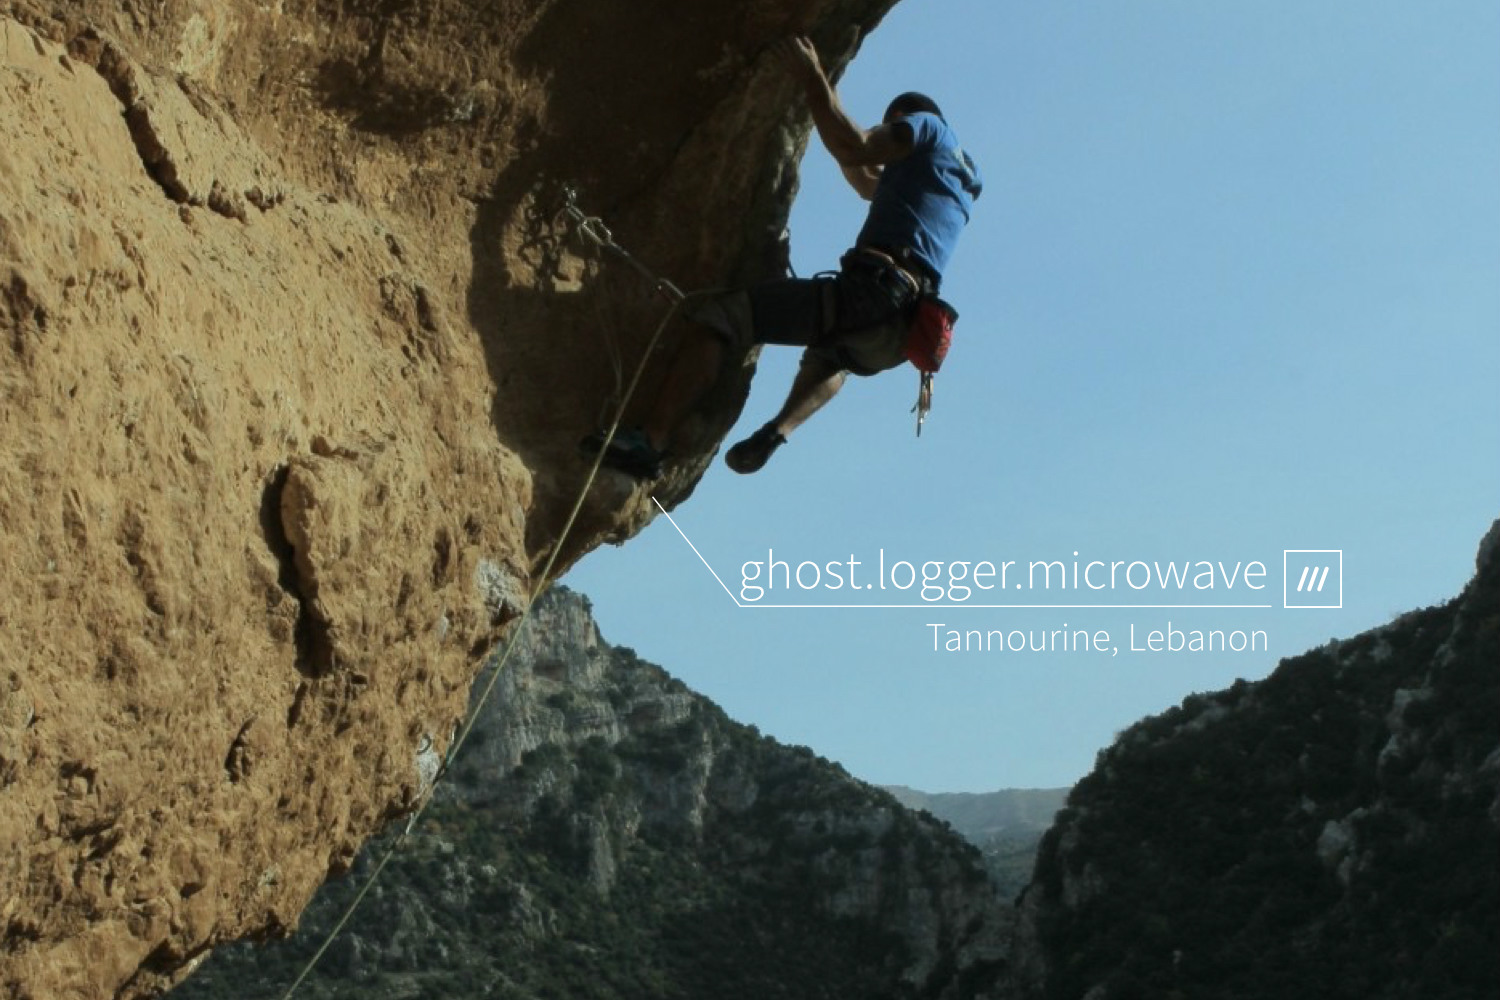 rock climber ascending cliff at 3 word address ghost.logger.microwave